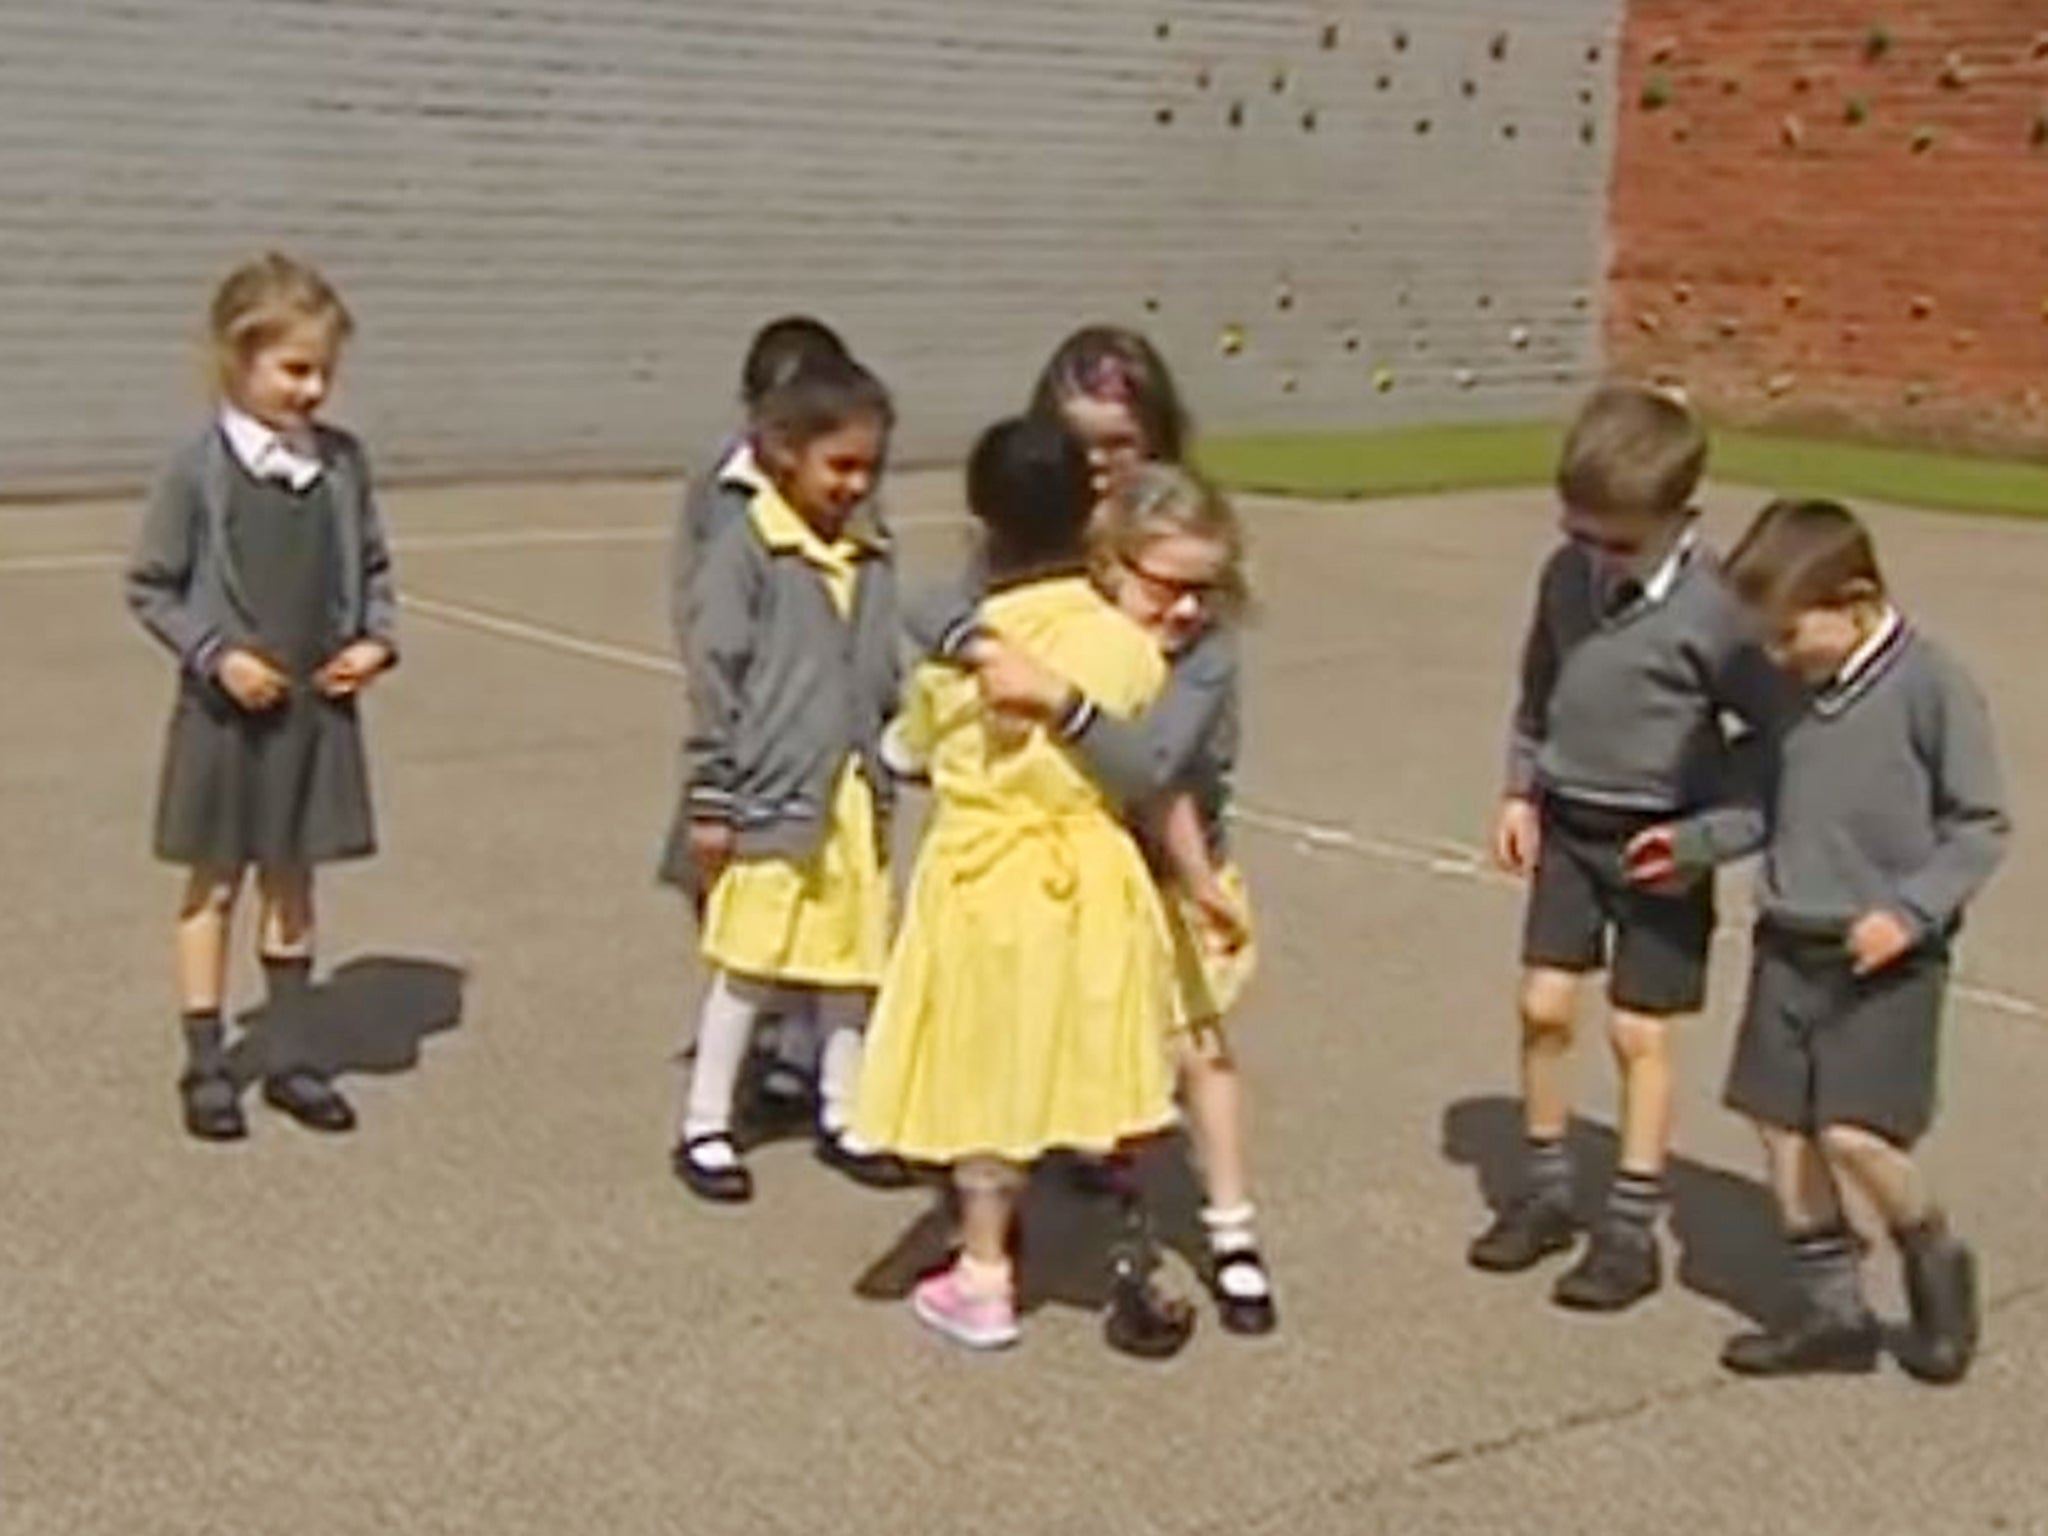 seven-year-old girl shows friends her new prosthetic leg for first